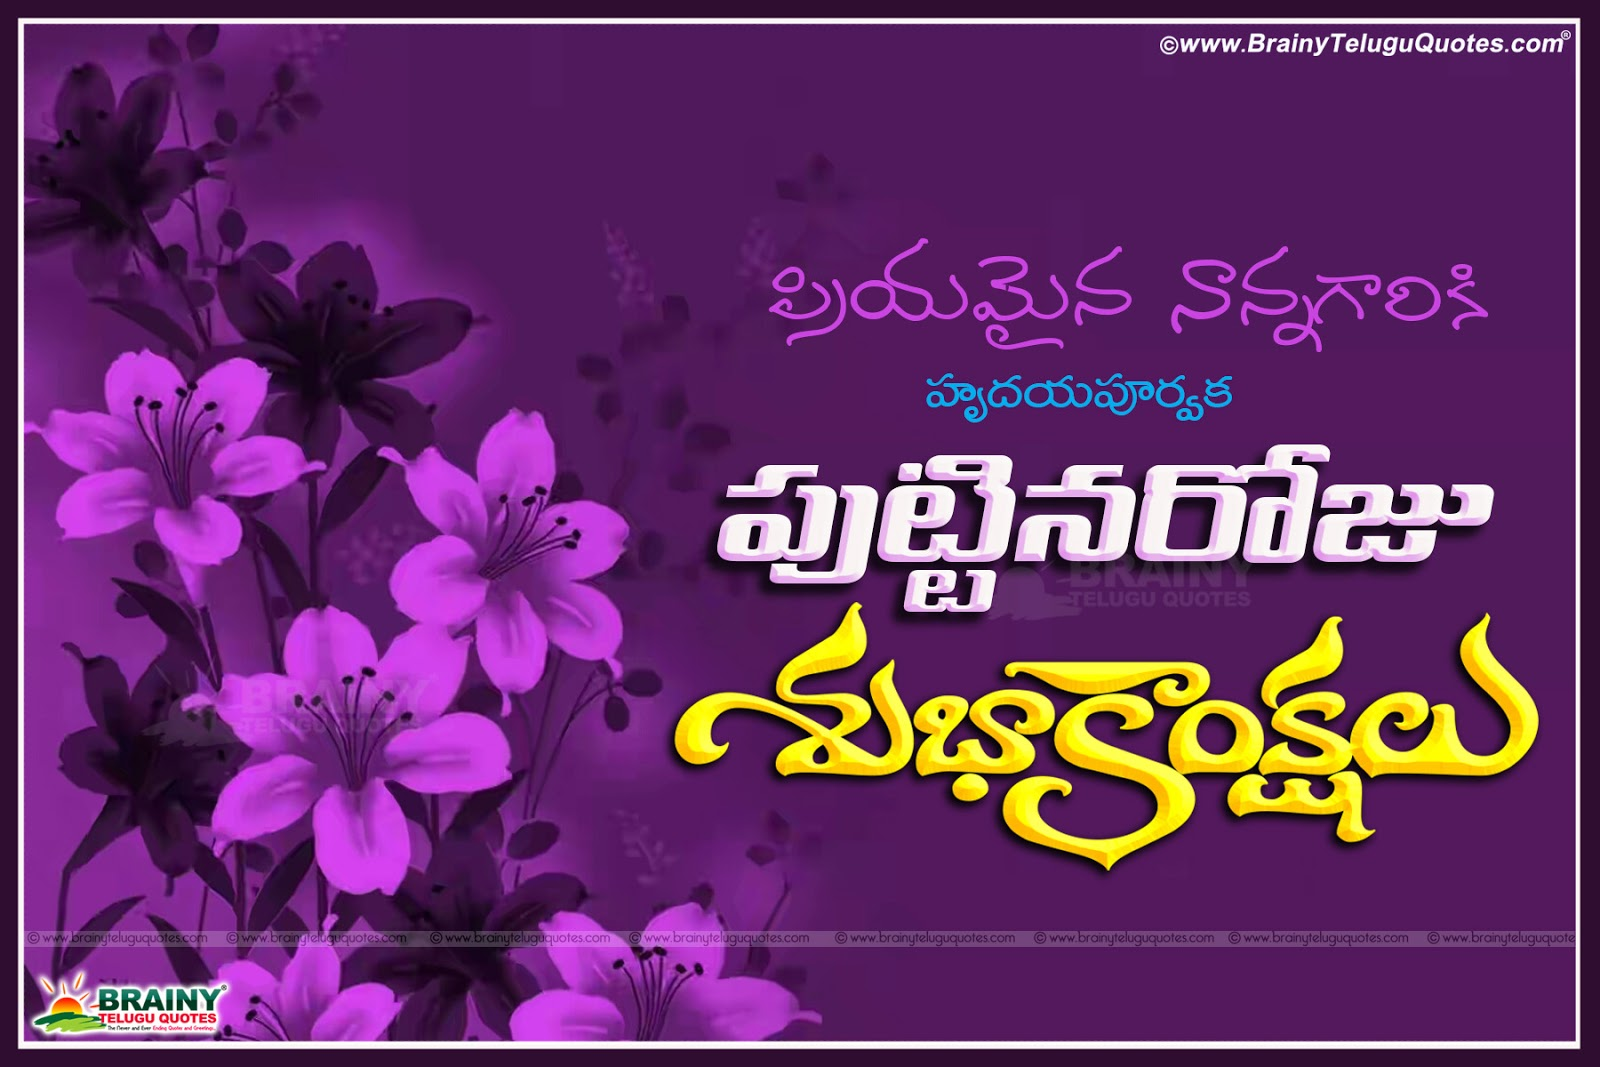 happy birthday nanna telugu captions quotes wishes images